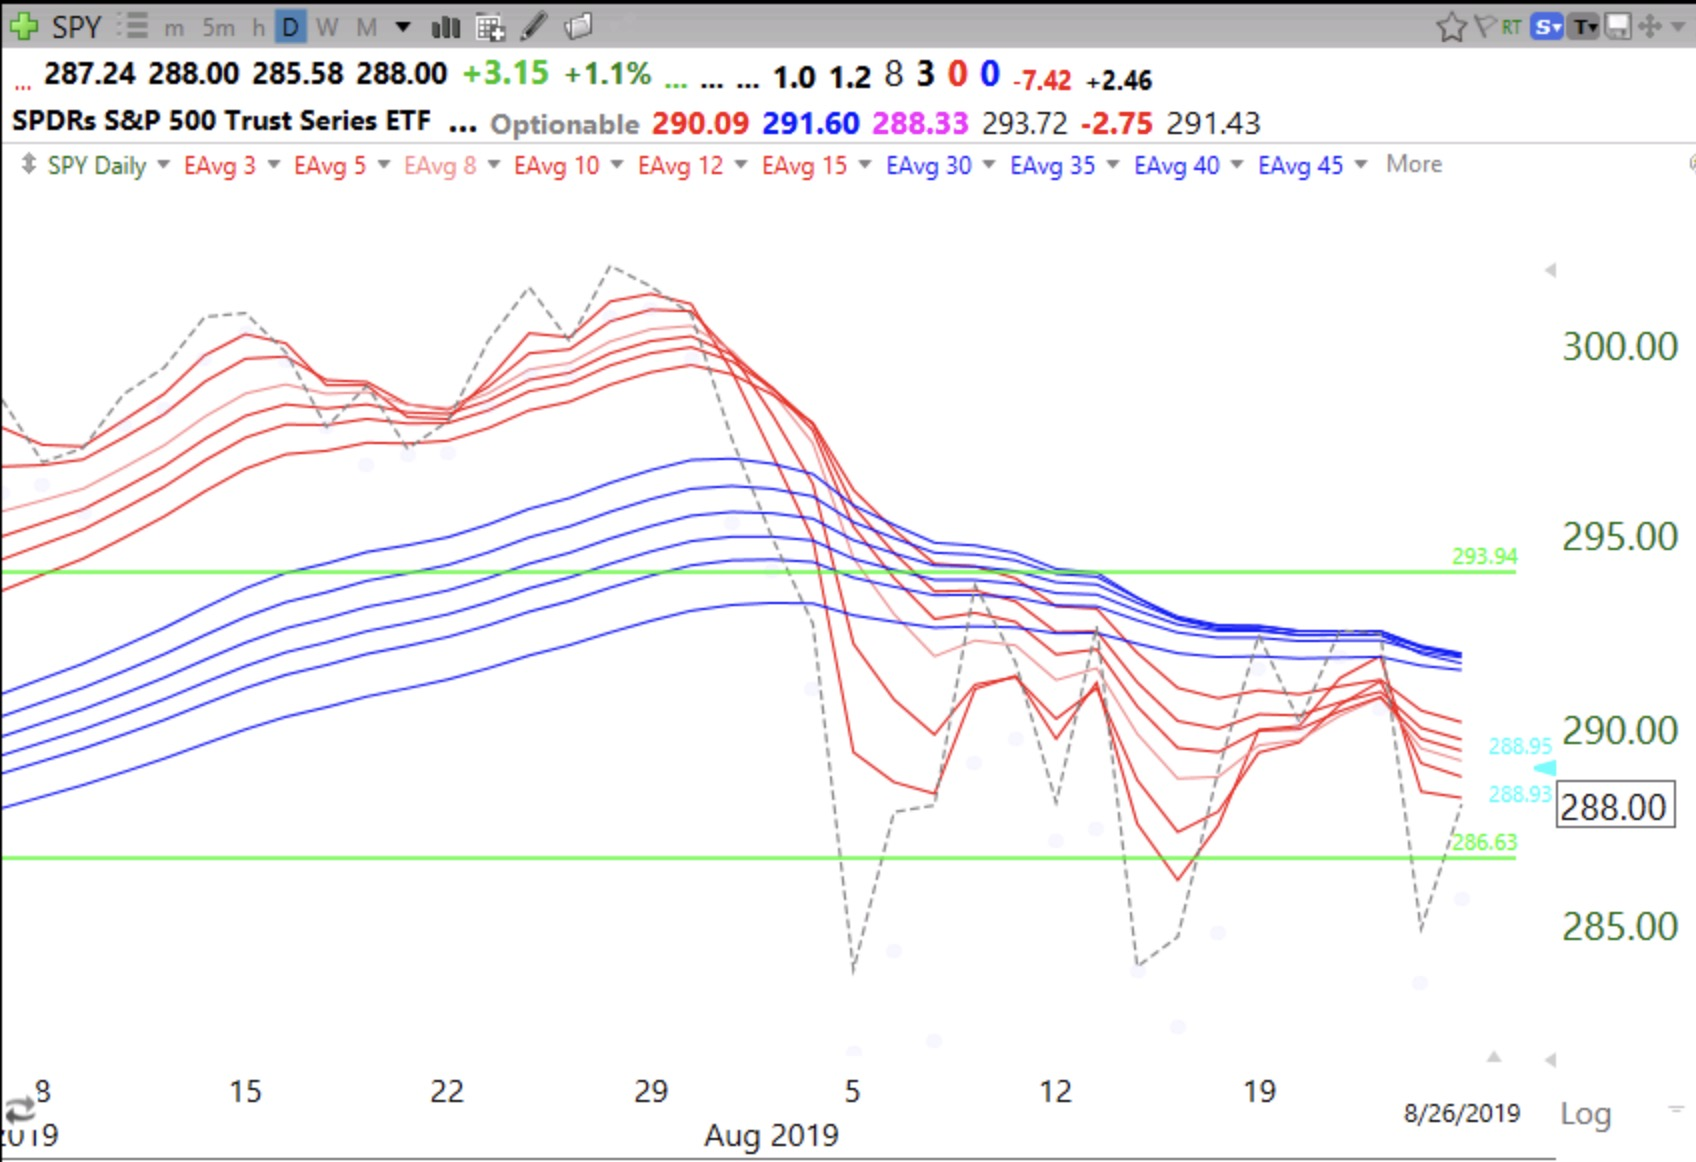 SPY in daily BWR down-trend, $GLD in daily RWB up-trend (all